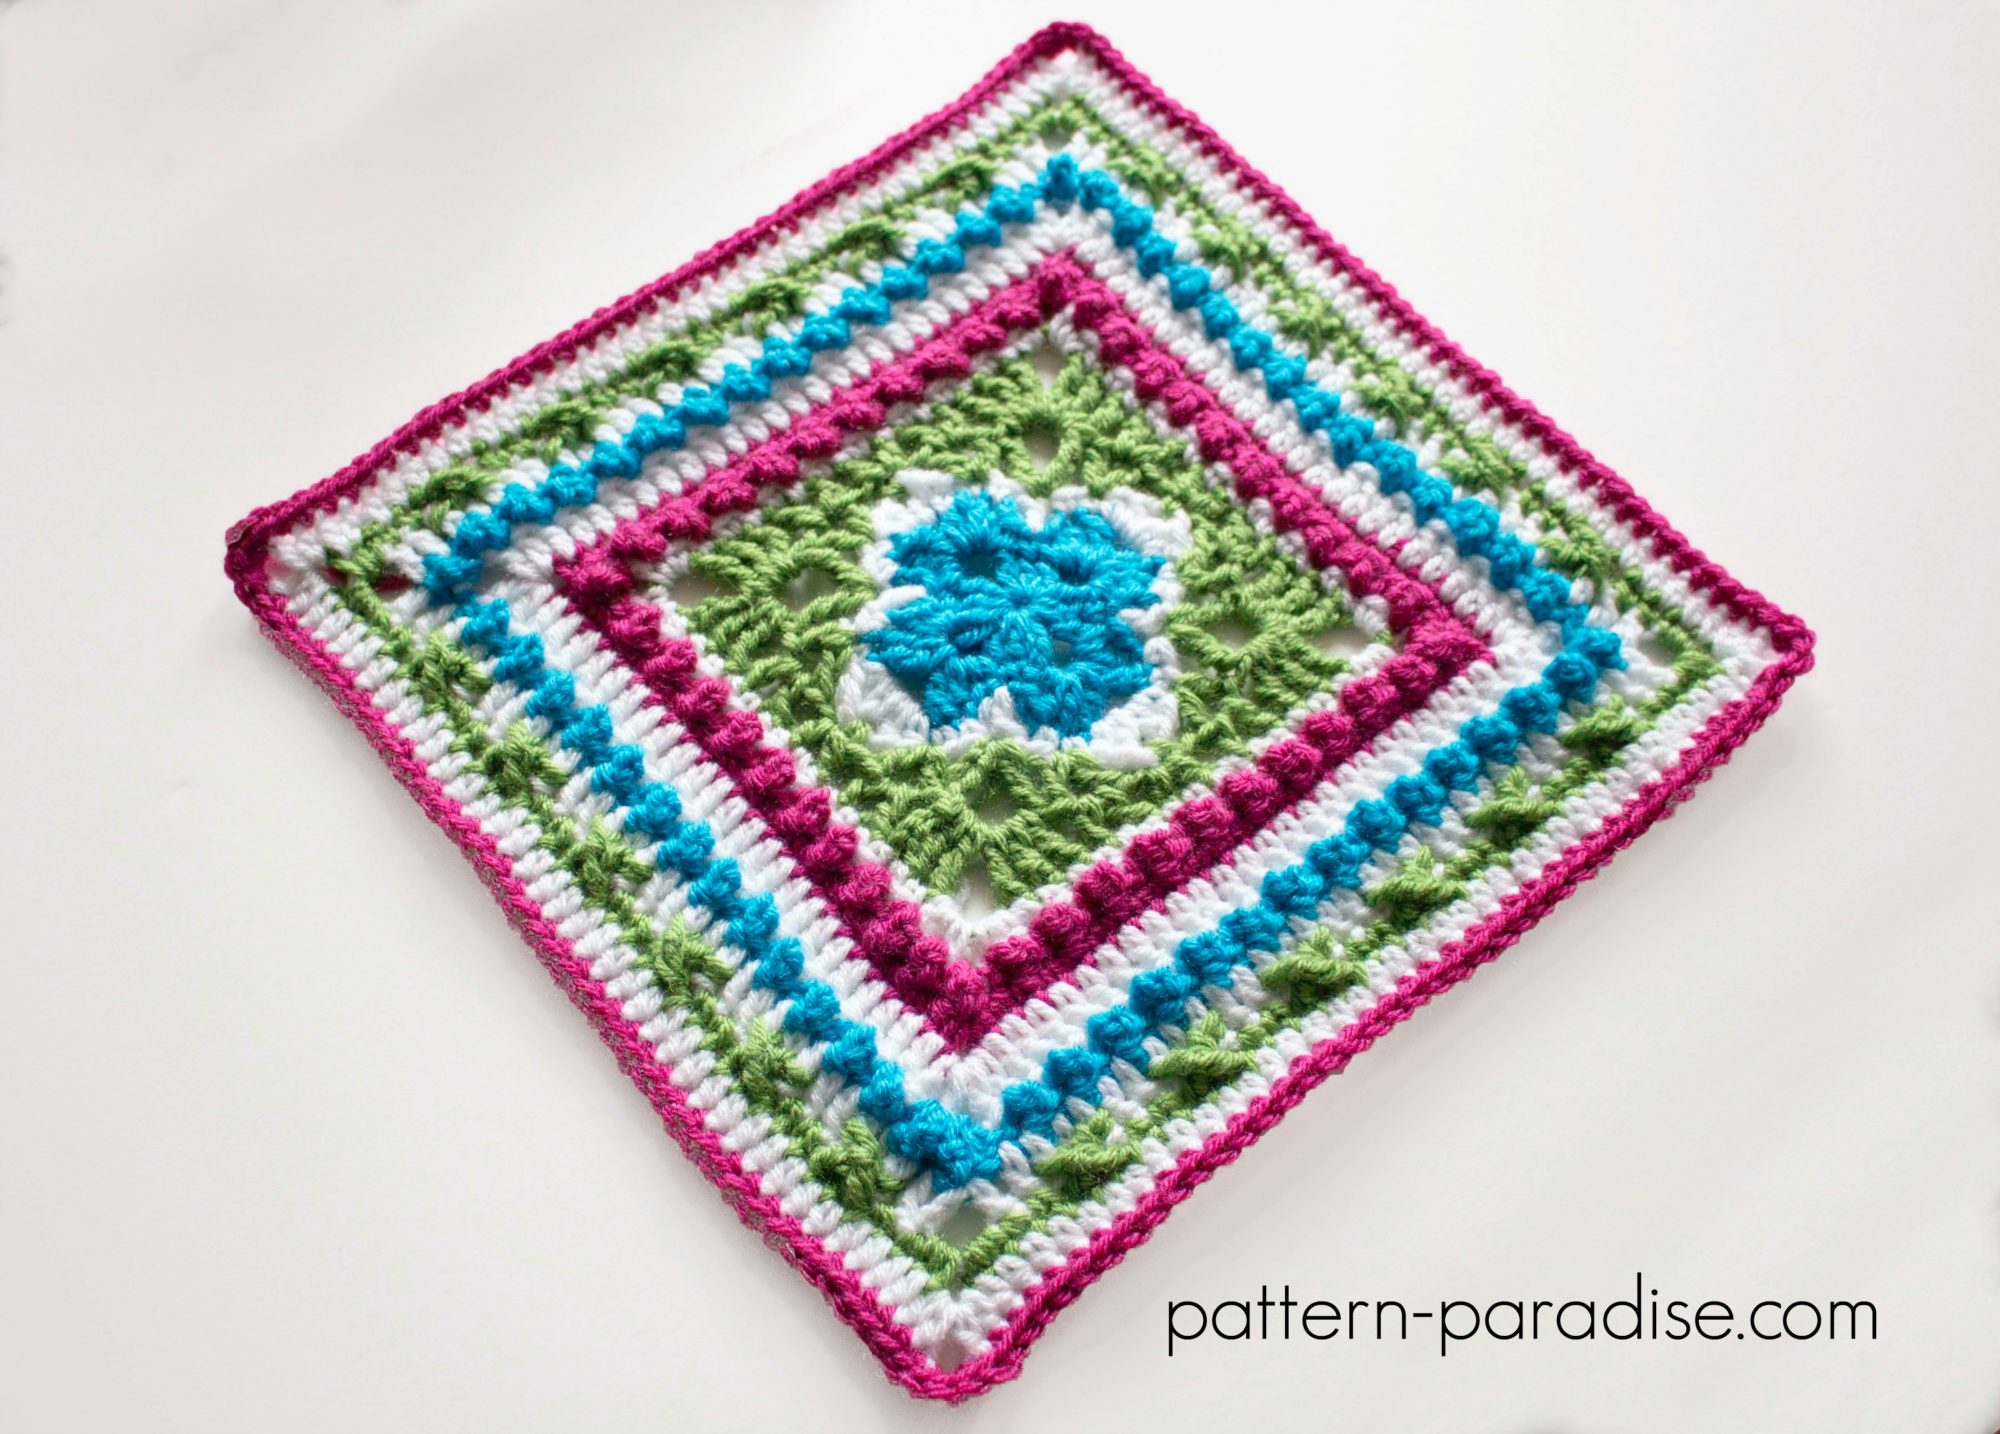 Free Crochet Patterns English : Free Crochet Pattern: English Garden Afghan Square ...